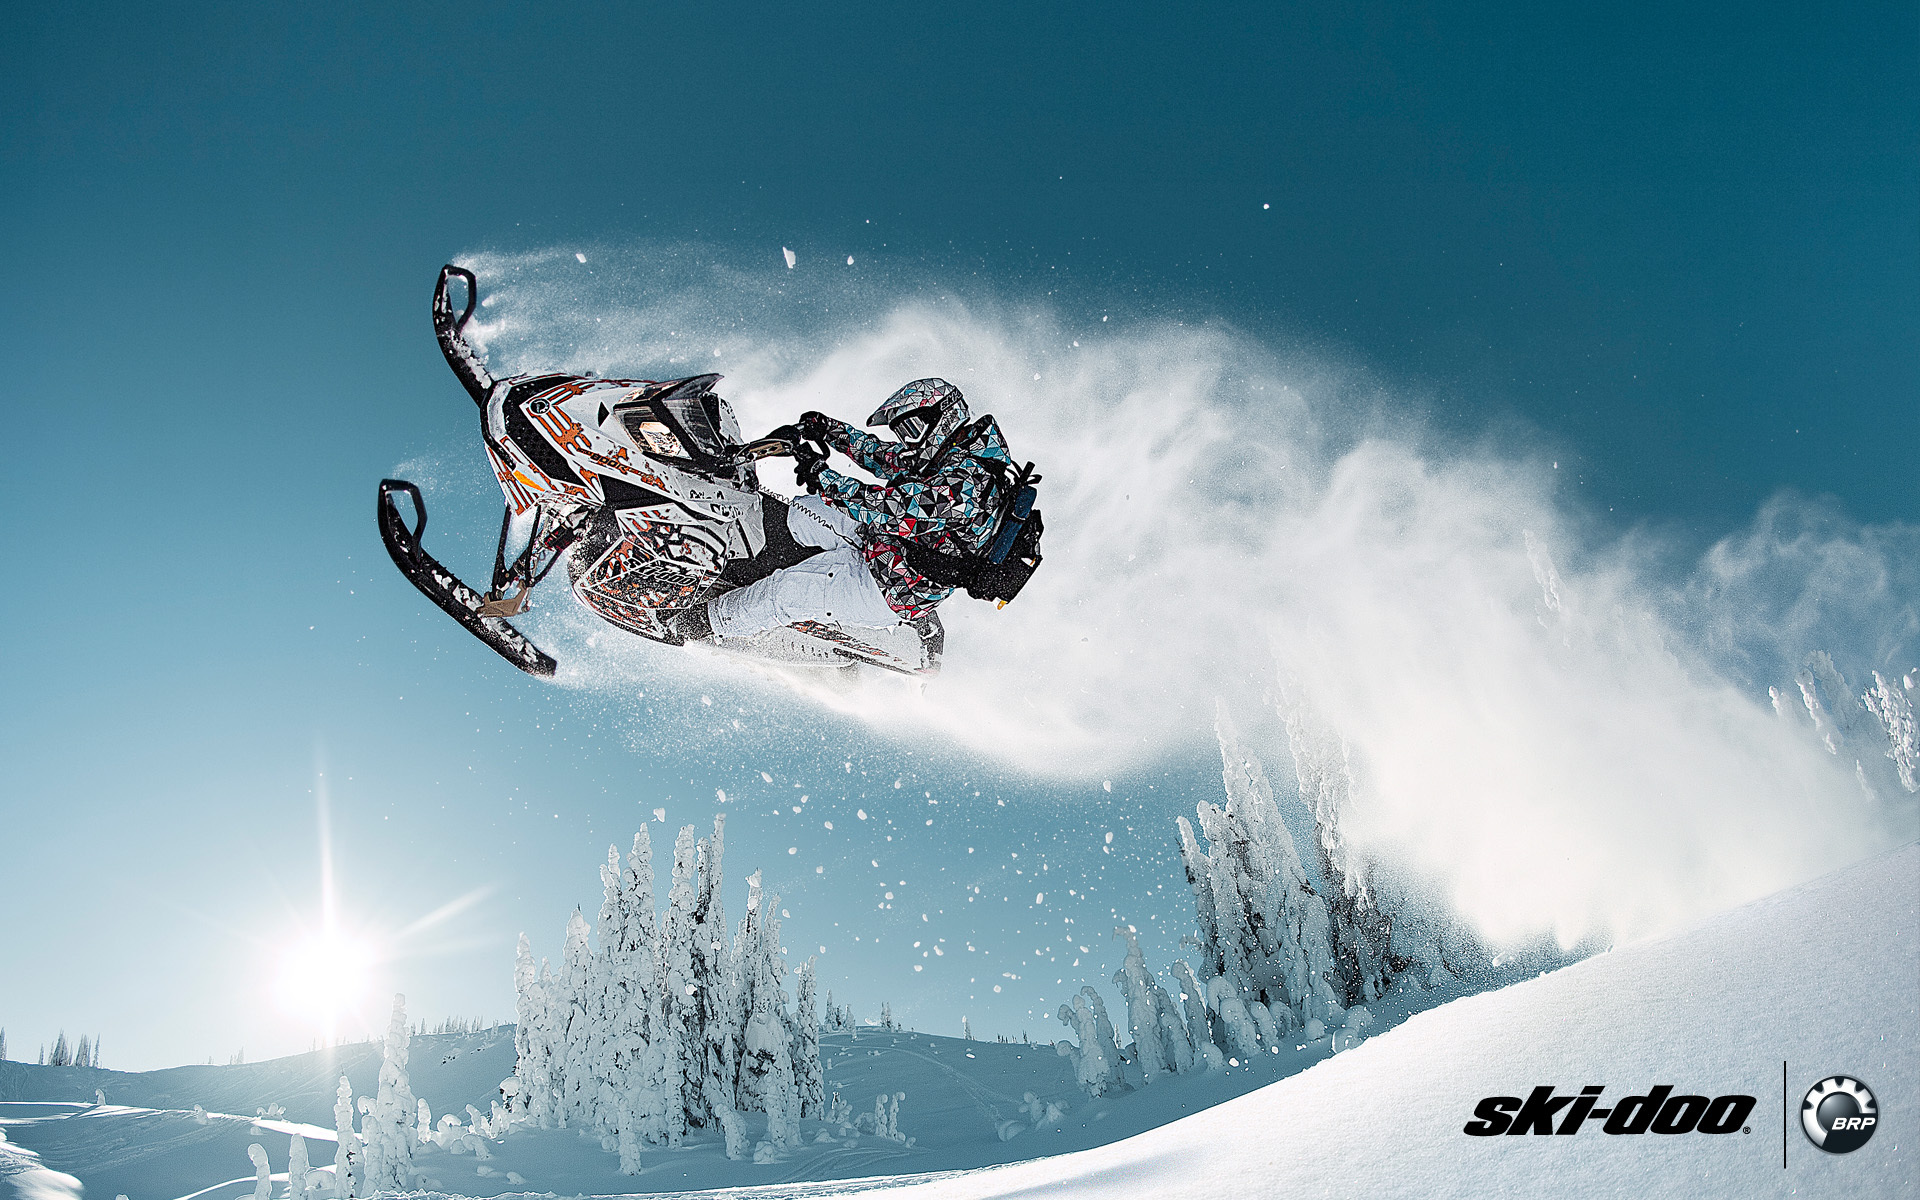 BRRP snowmobile ski doo ice mountain sport sunsire flight 1920x1200